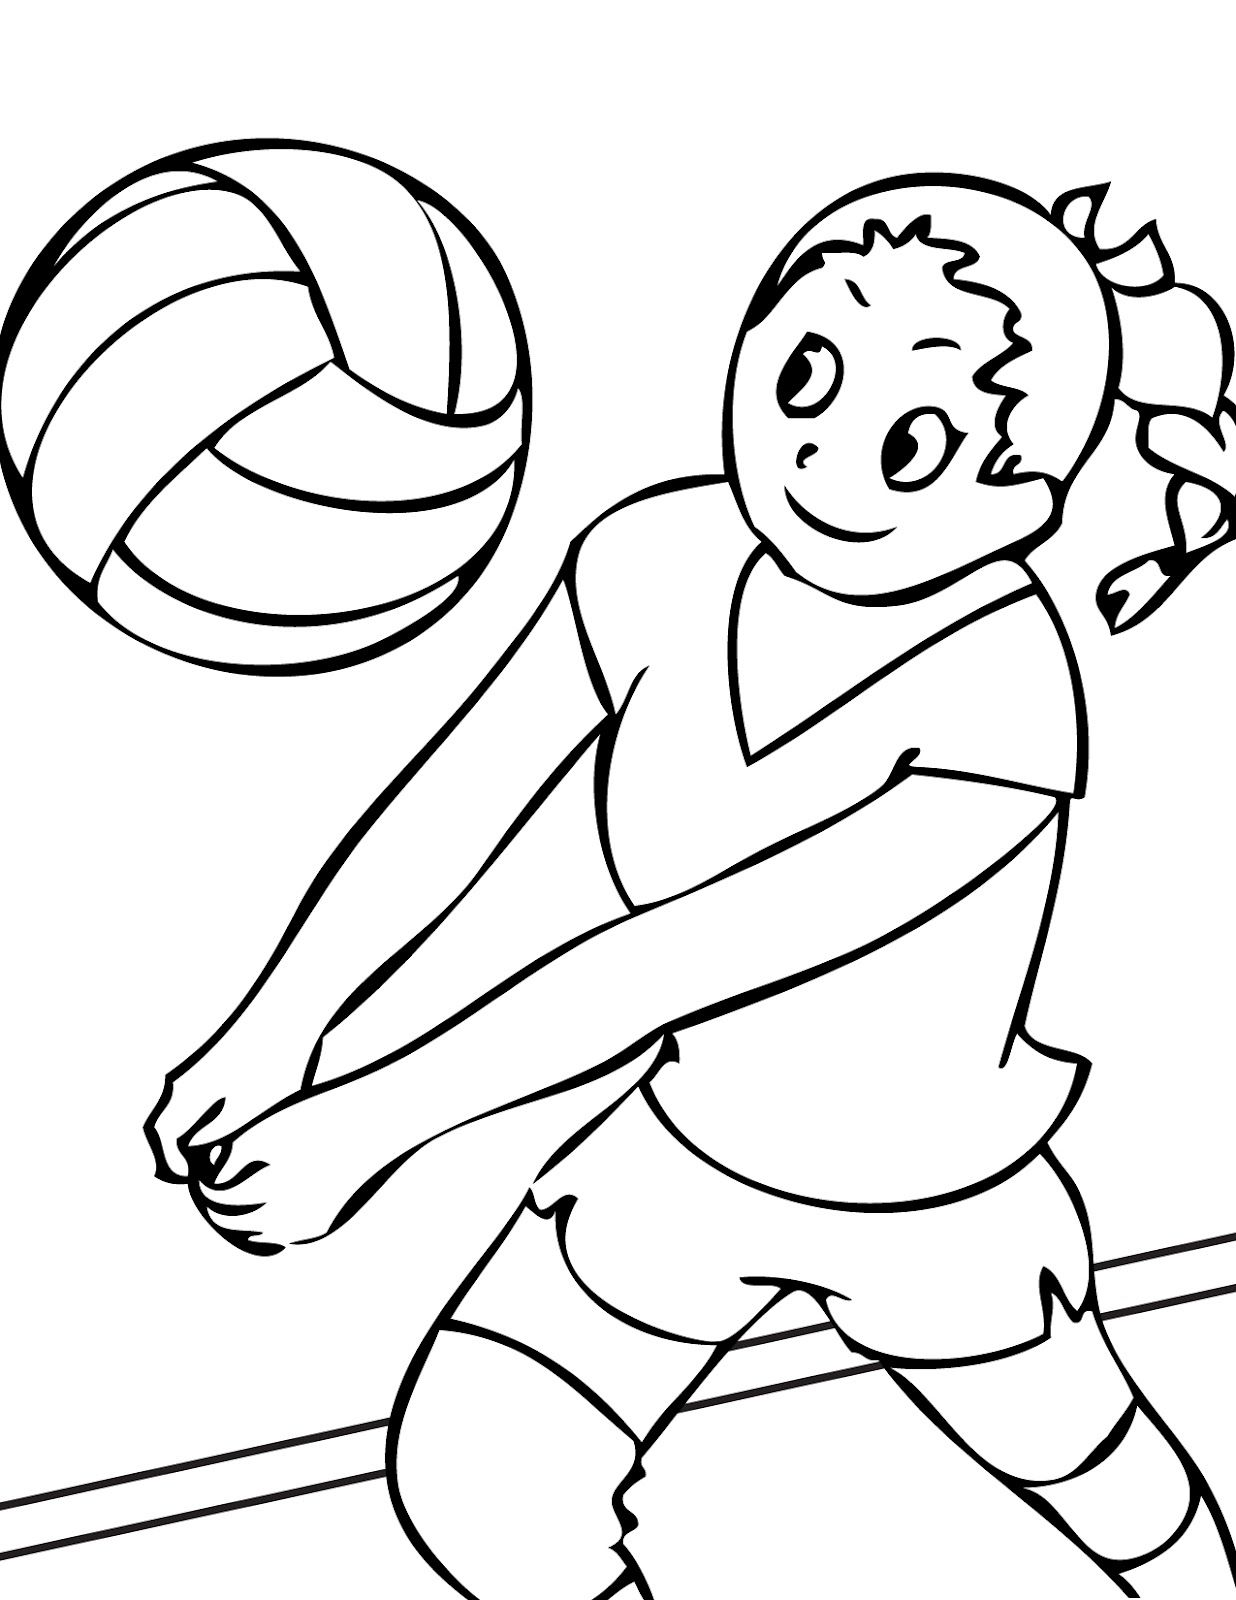 Children Play Volleyball In The City Park Vector Illustration Flat Design Style Ad Affiliate City Park City Illustration Vector Illustration Park City